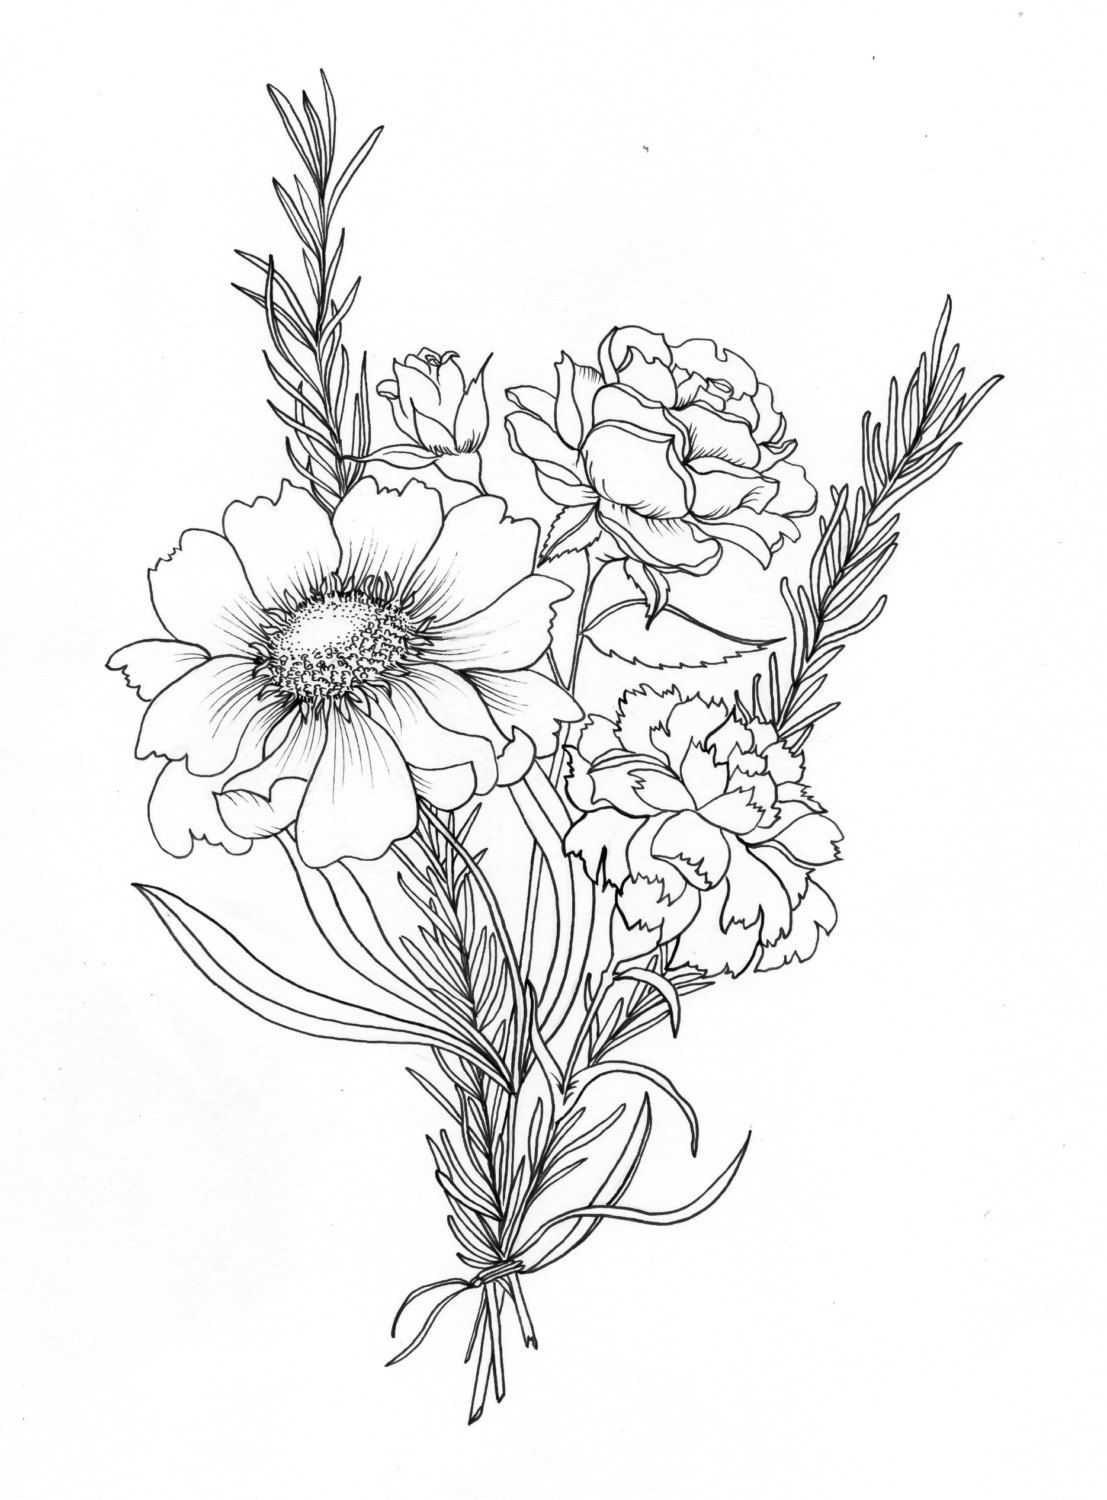 aac90a3f6 Custom Buttercup Illustration Tattoo for Greer // CUSTOM TATTOO ...